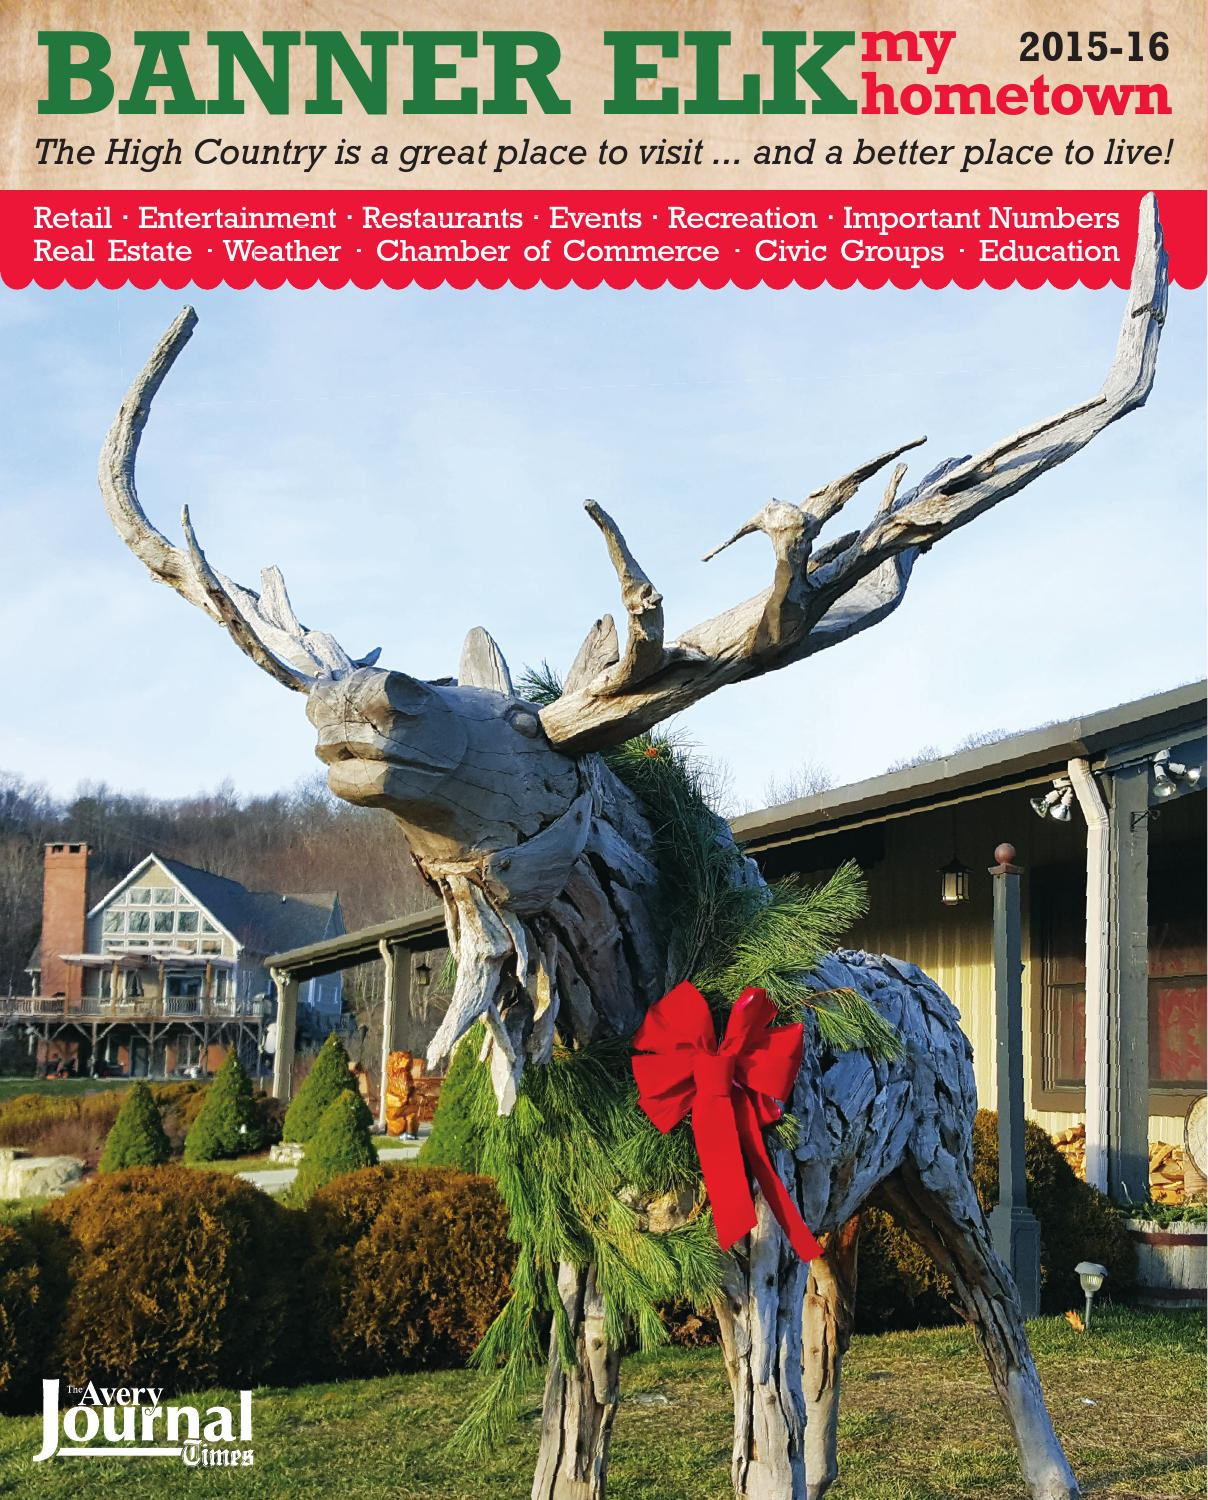 Places To Travel In December 2015: Banner Elk My Hometown 2015-16 By Mountain Times